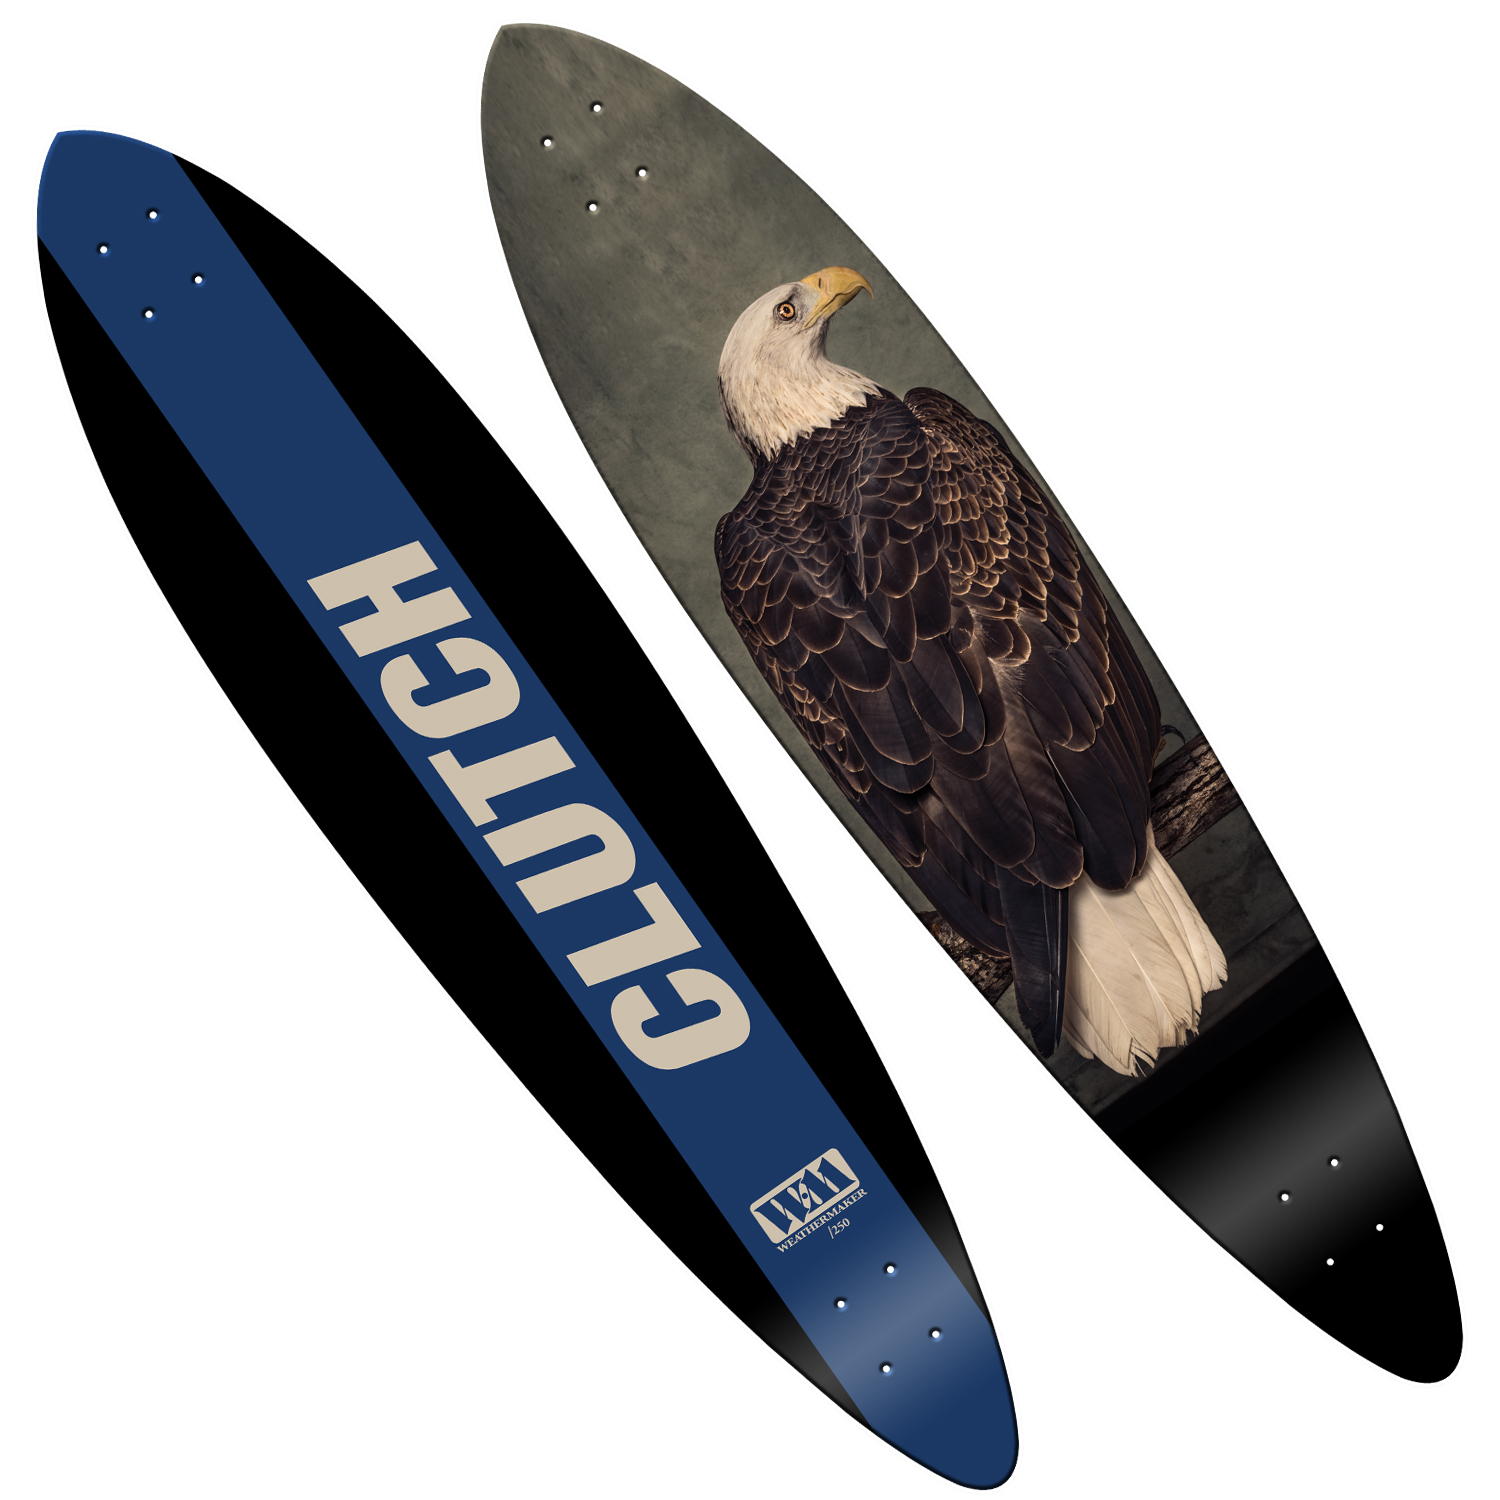 Limited Edition Longboard Skate Deck Bundle